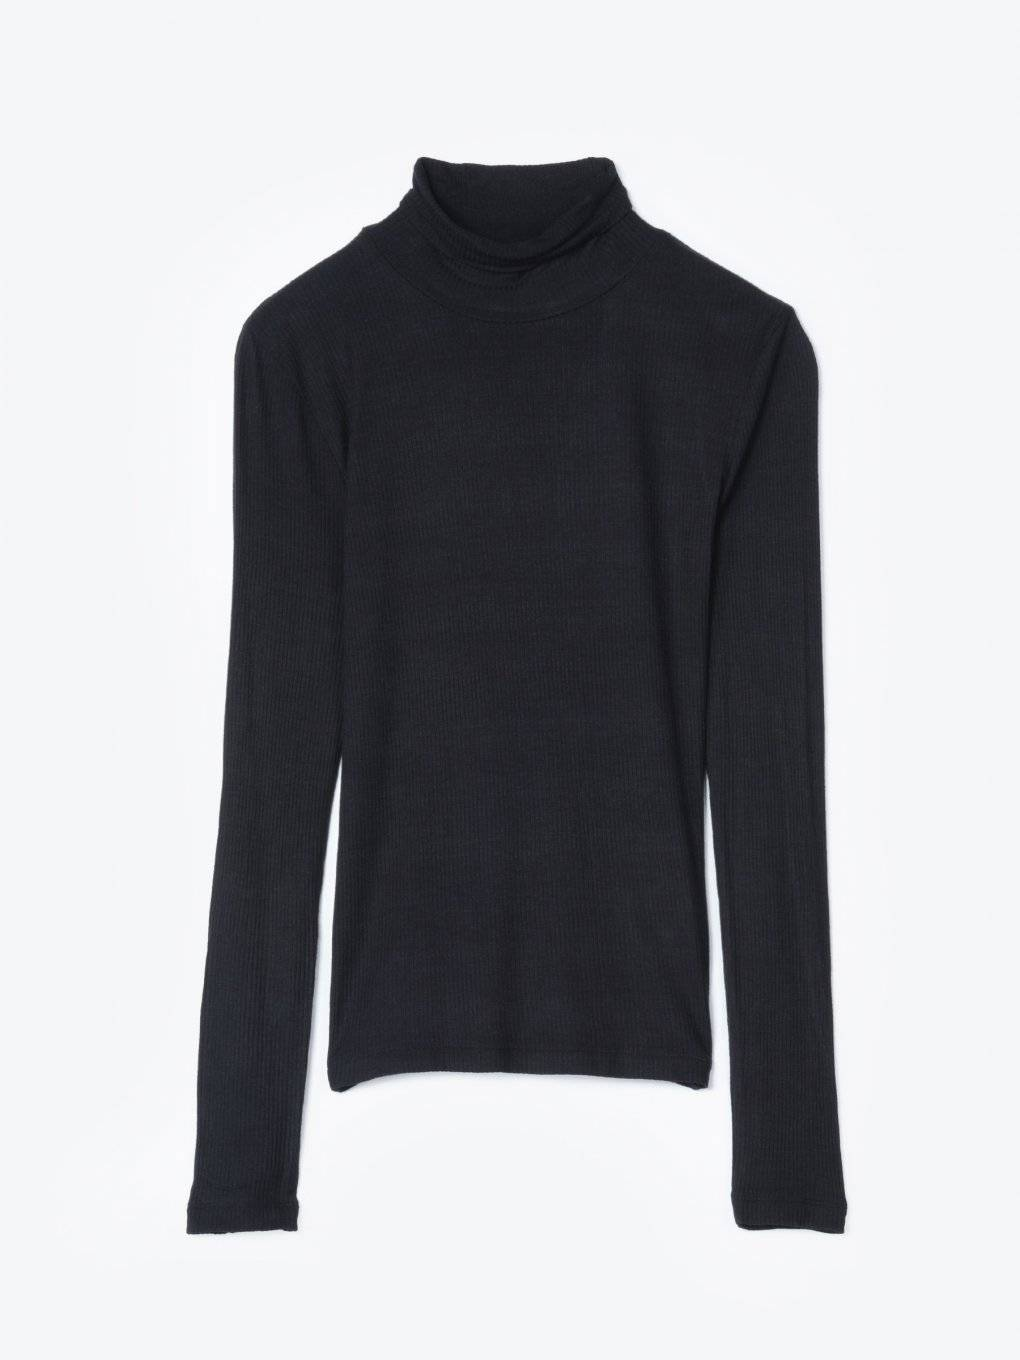 Basic ribbed turtleneck t-shirt